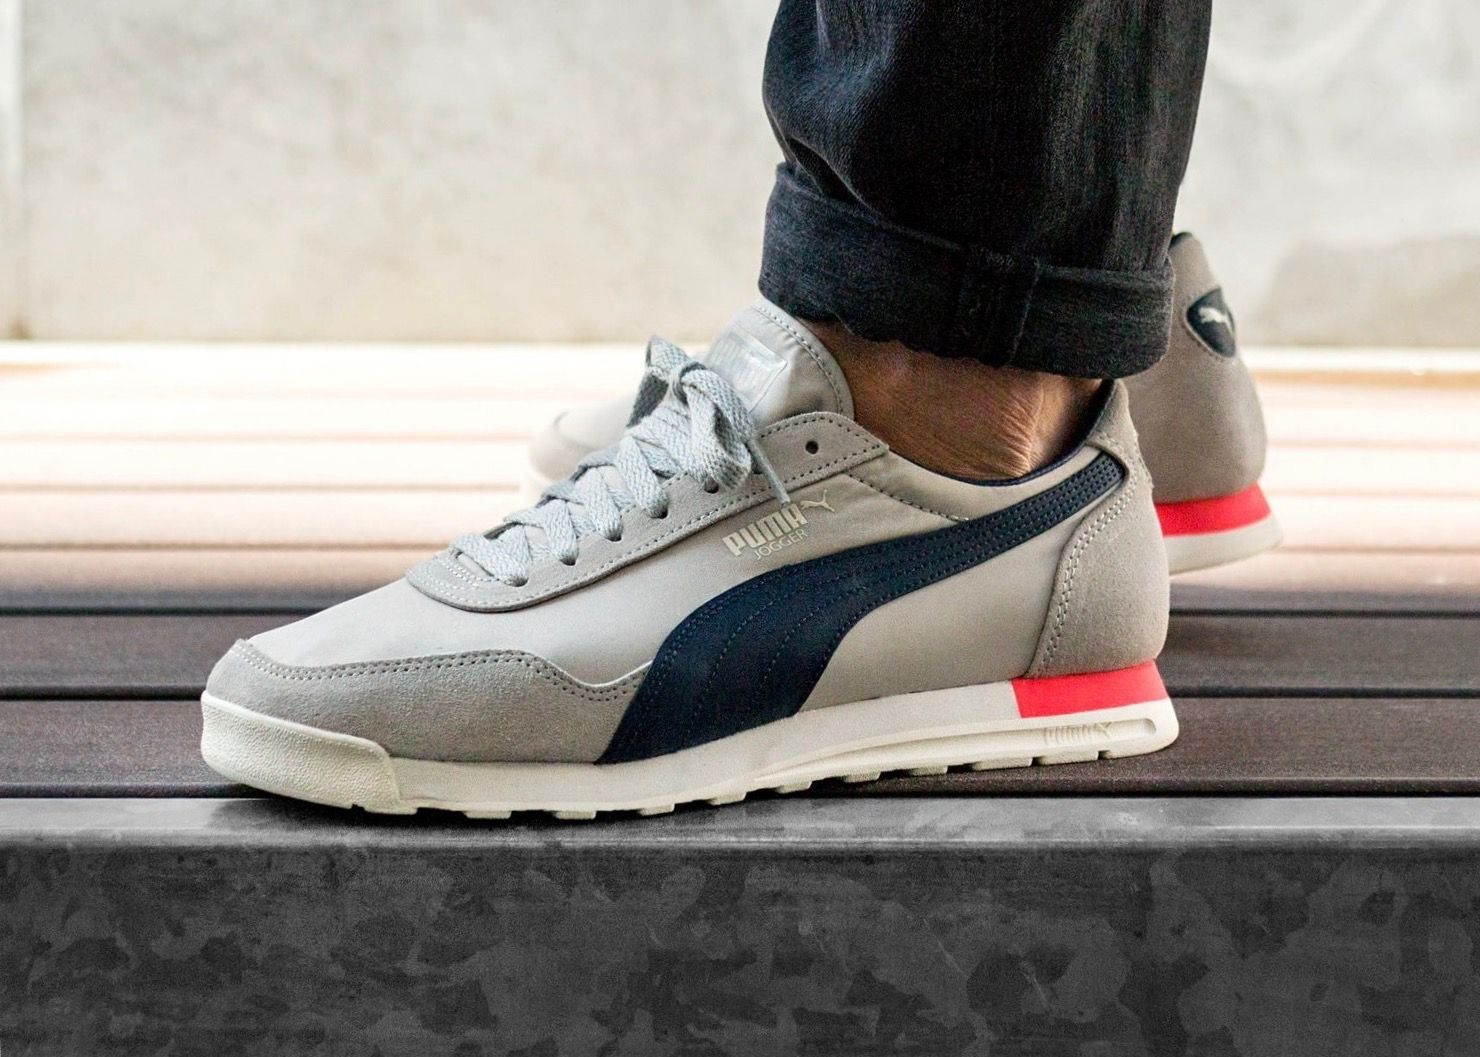 Puma Jogger | Sneakers men fashion, Mens puma shoes, Mens